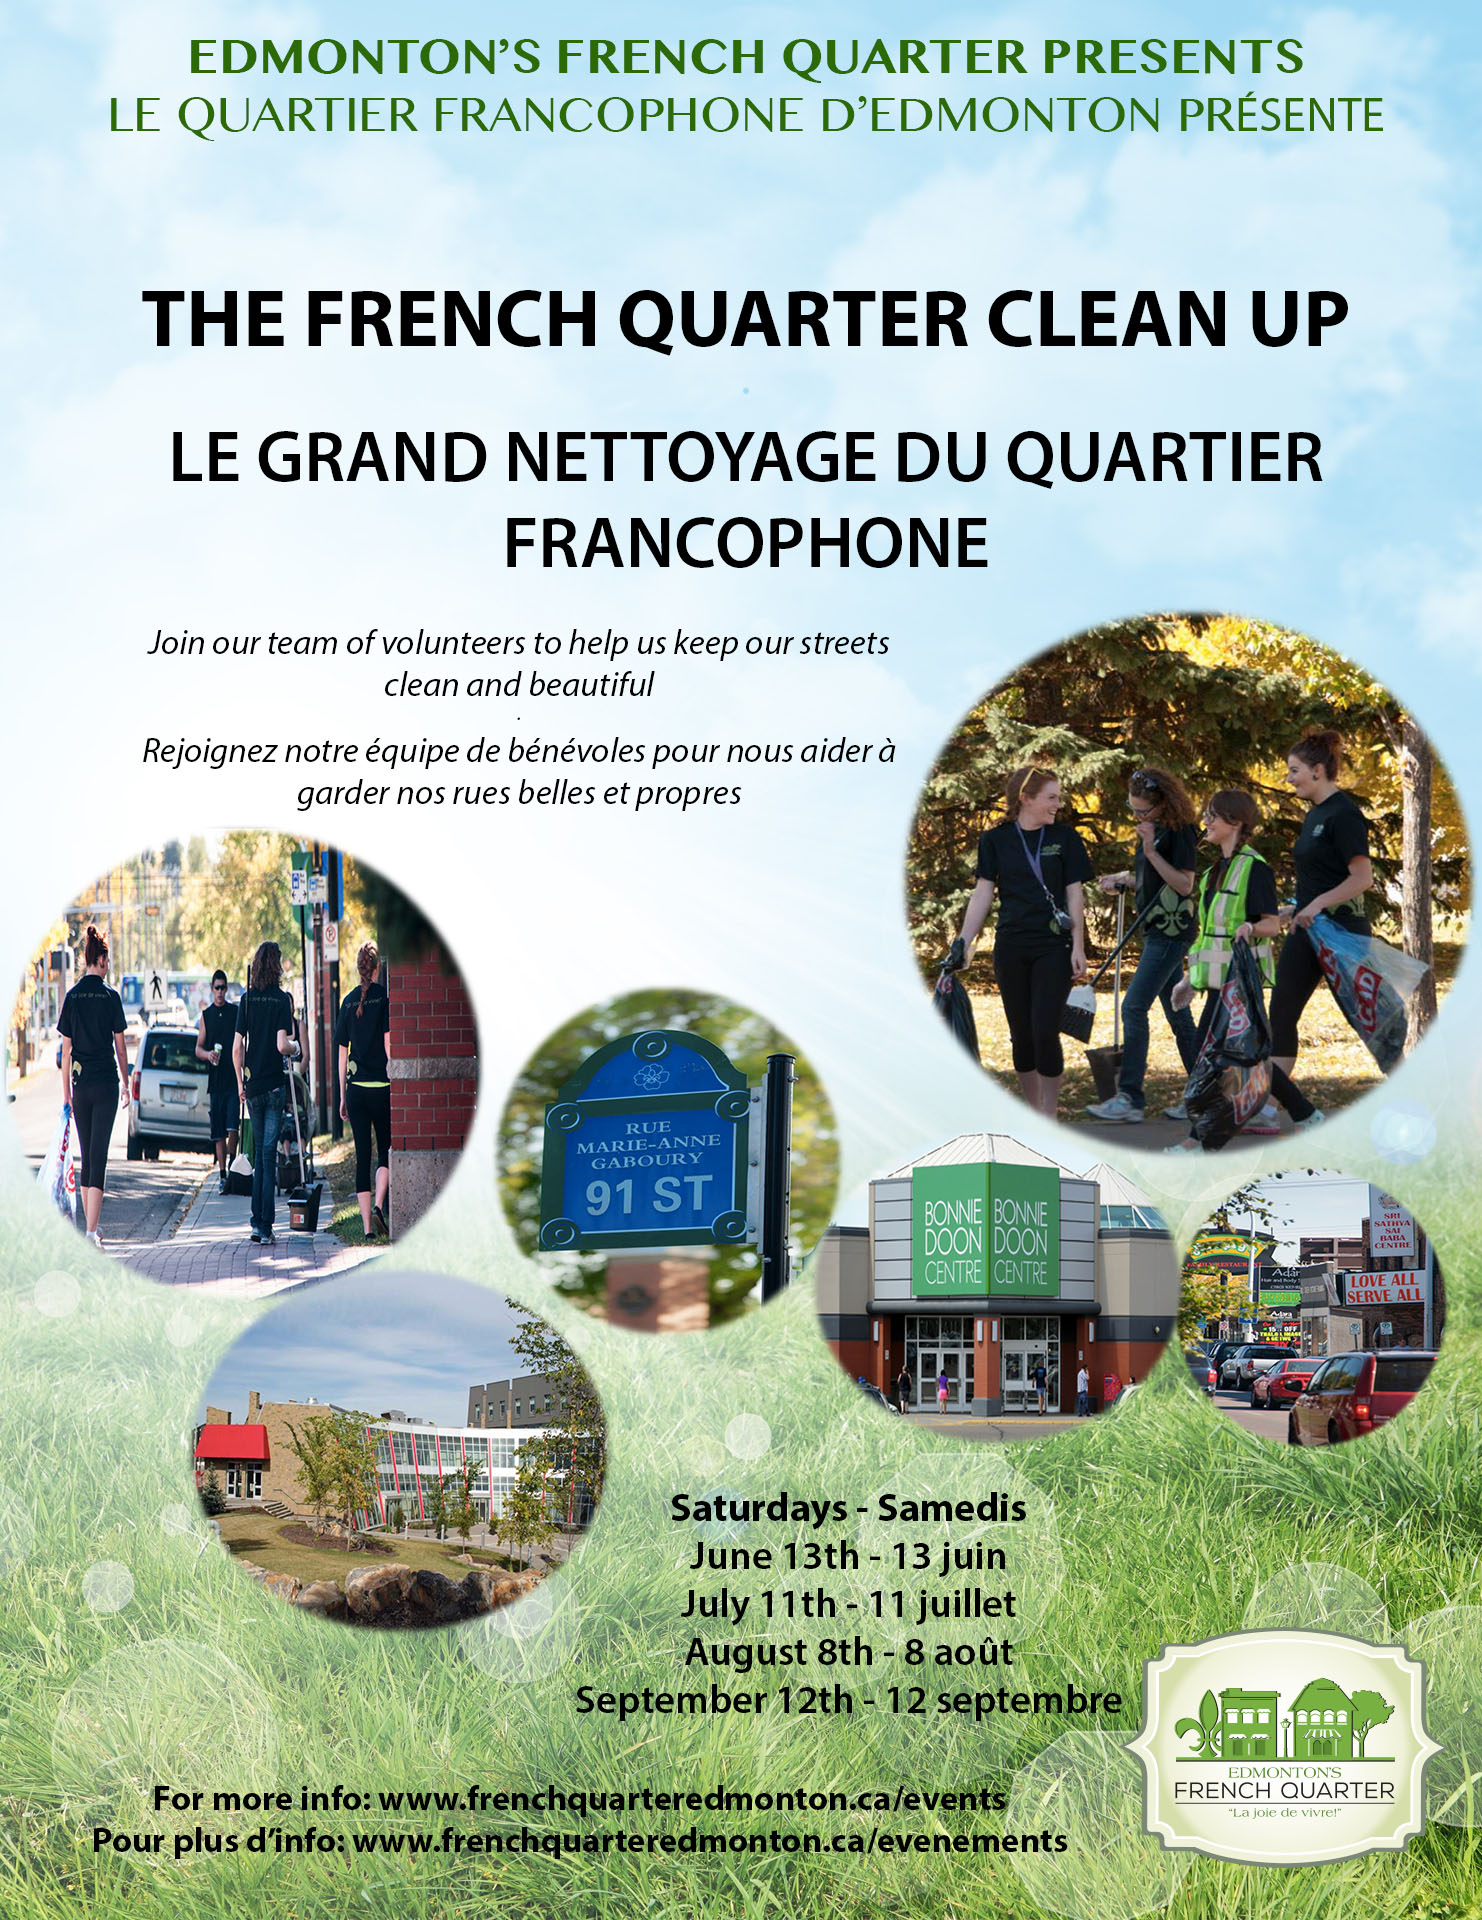 The French Quarter Cleanup